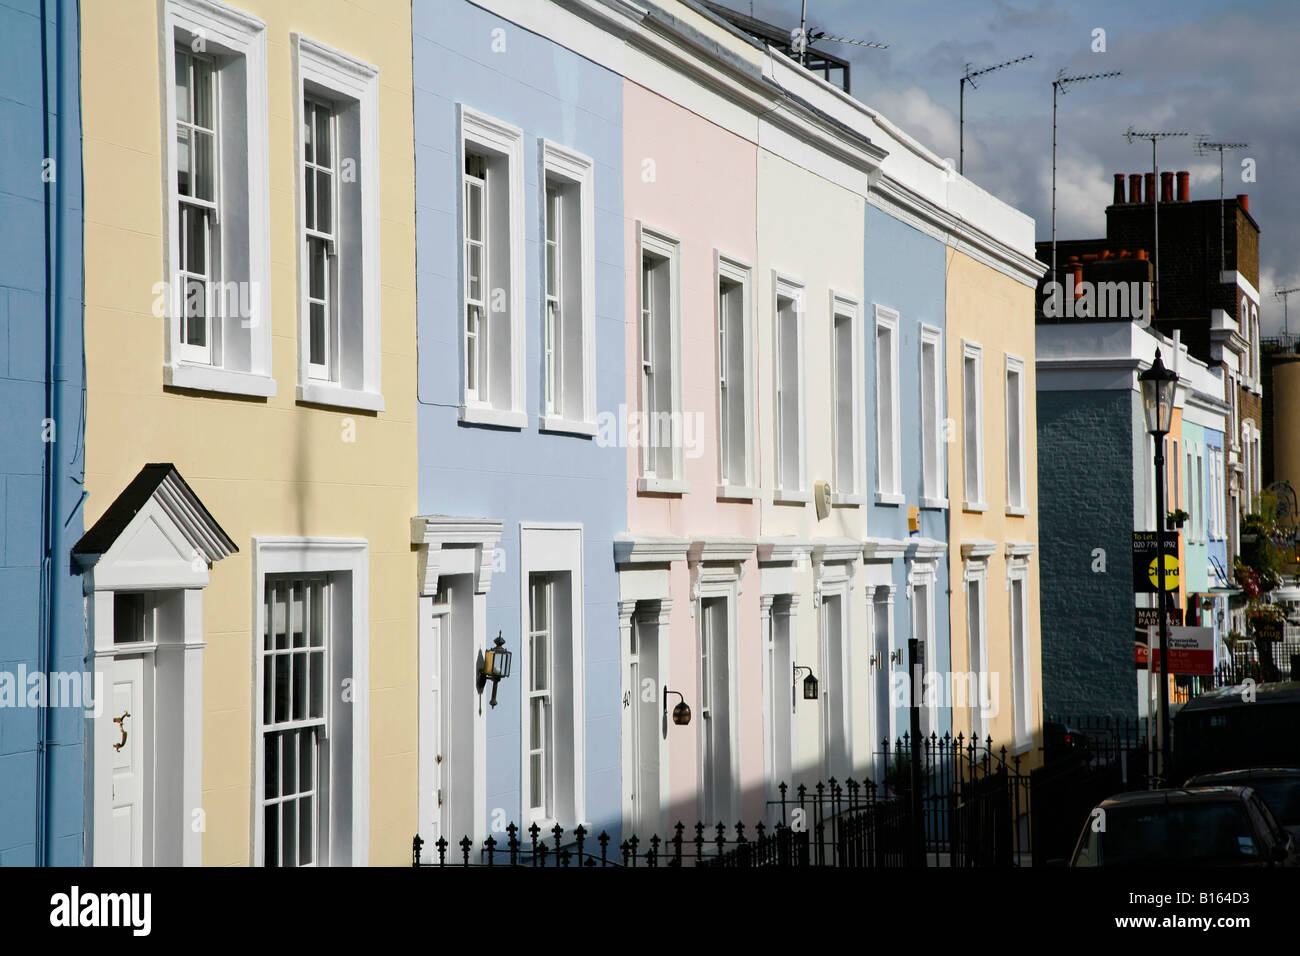 Hillgate Place in Notting Hill, London - Stock Image